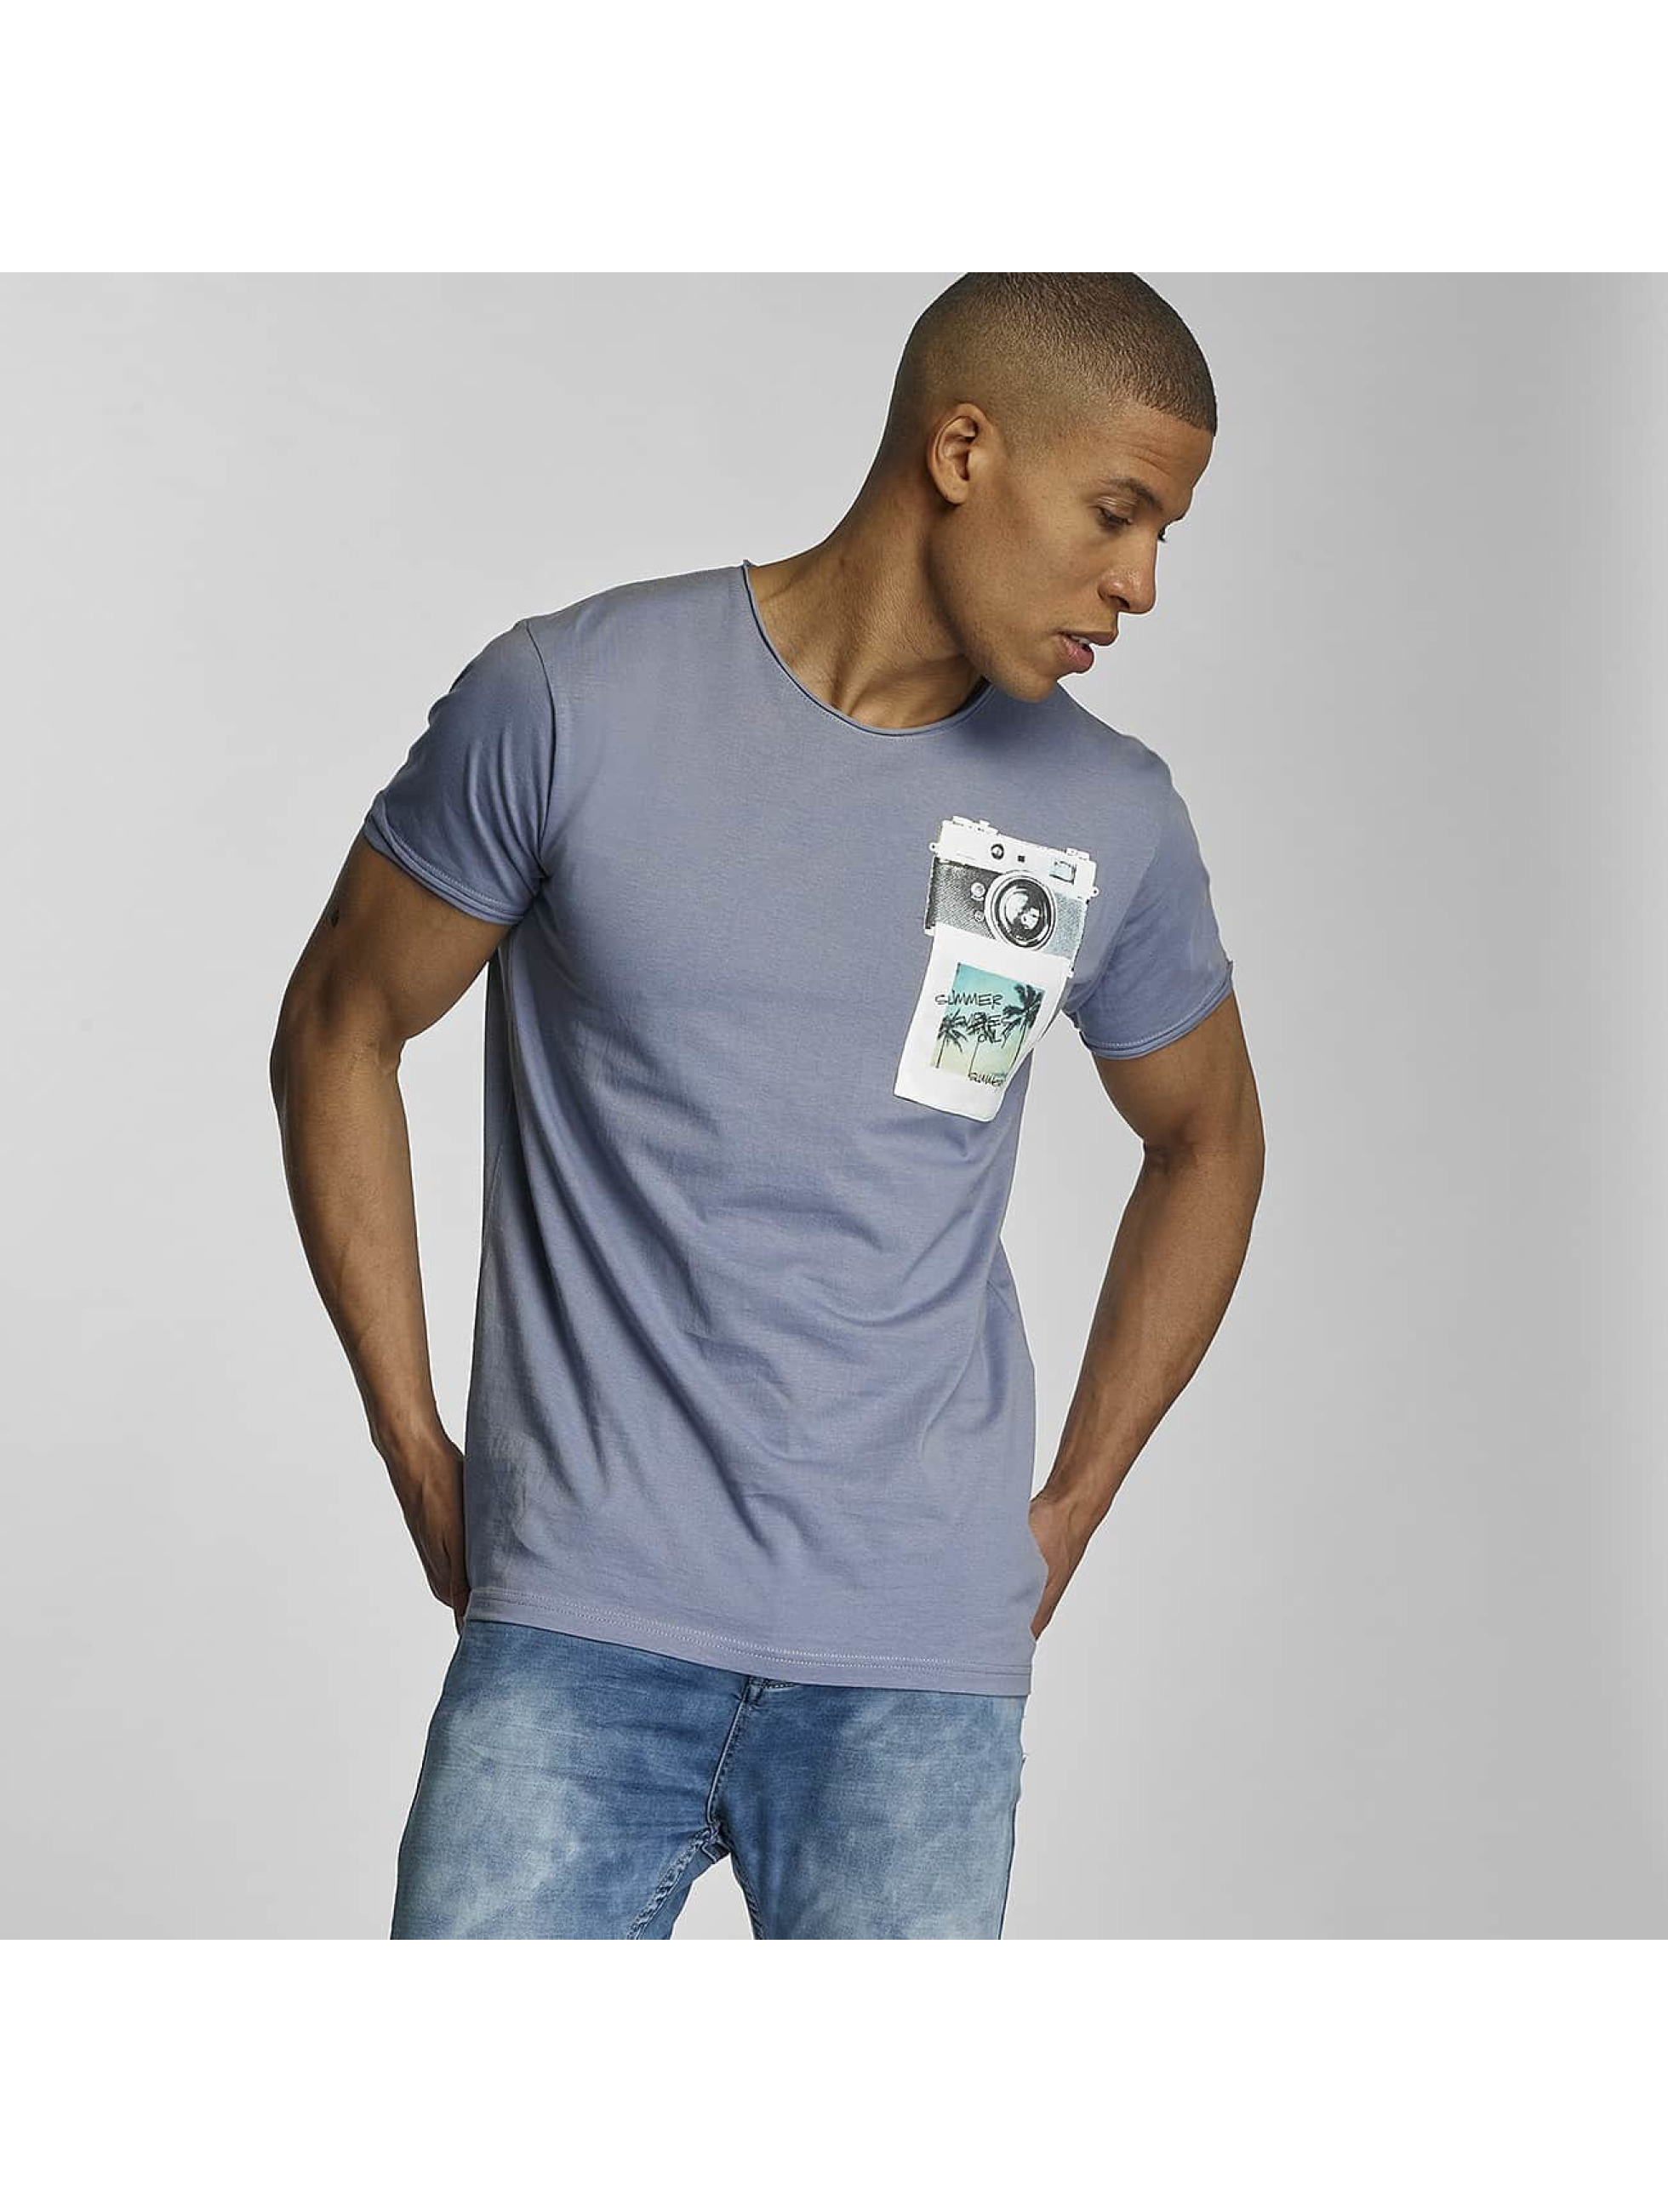 Sublevel T-Shirt Summer Vibes Only blau